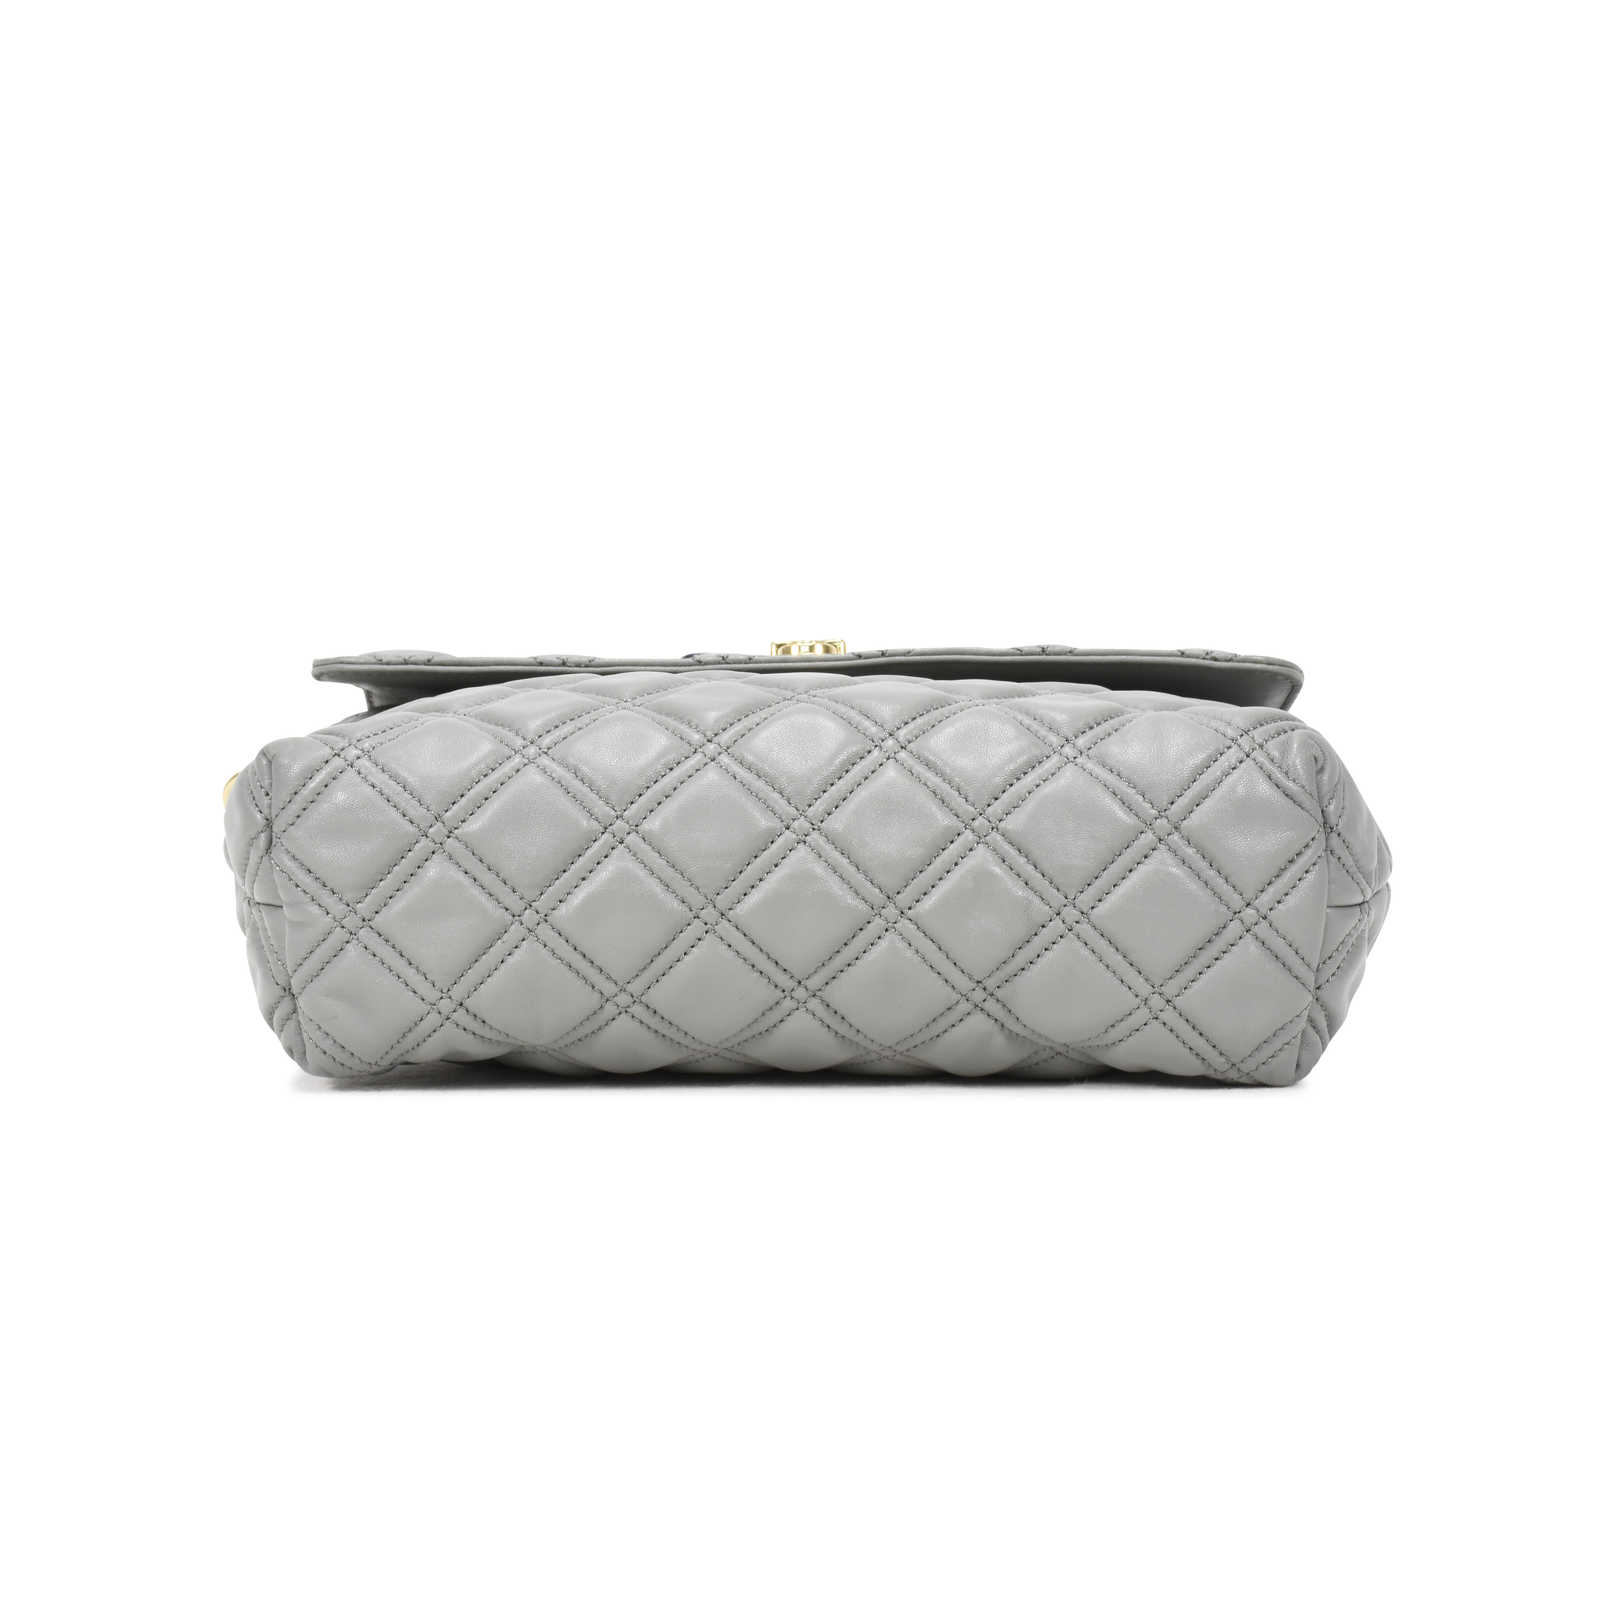 a9a552912a7 ... Authentic Second Hand Marc Jacobs Skinny Single Quilted Bag  (PSS-364-00002) ...